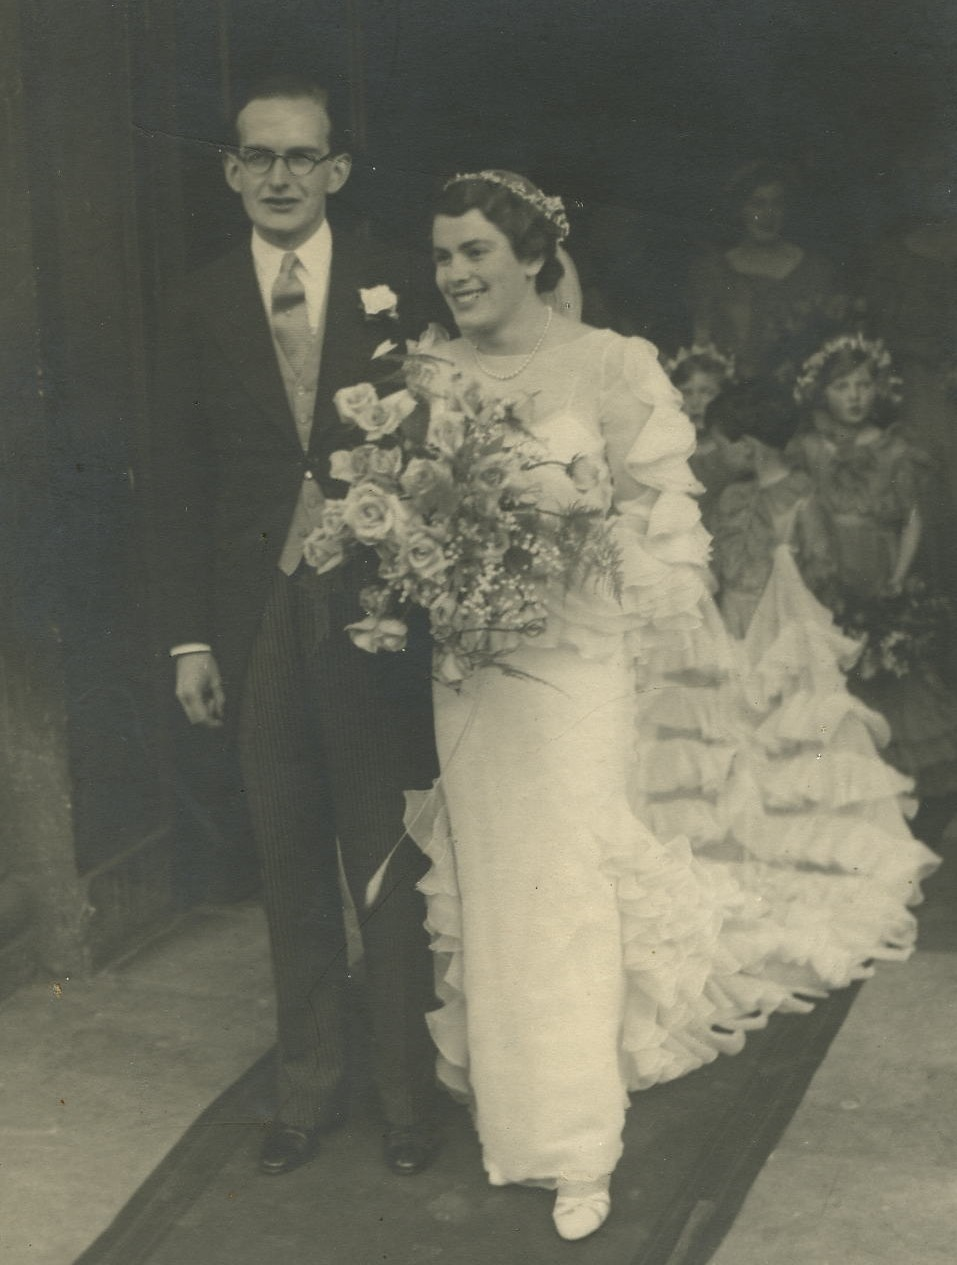 John Noble & Elizabeth Lucas Wedding